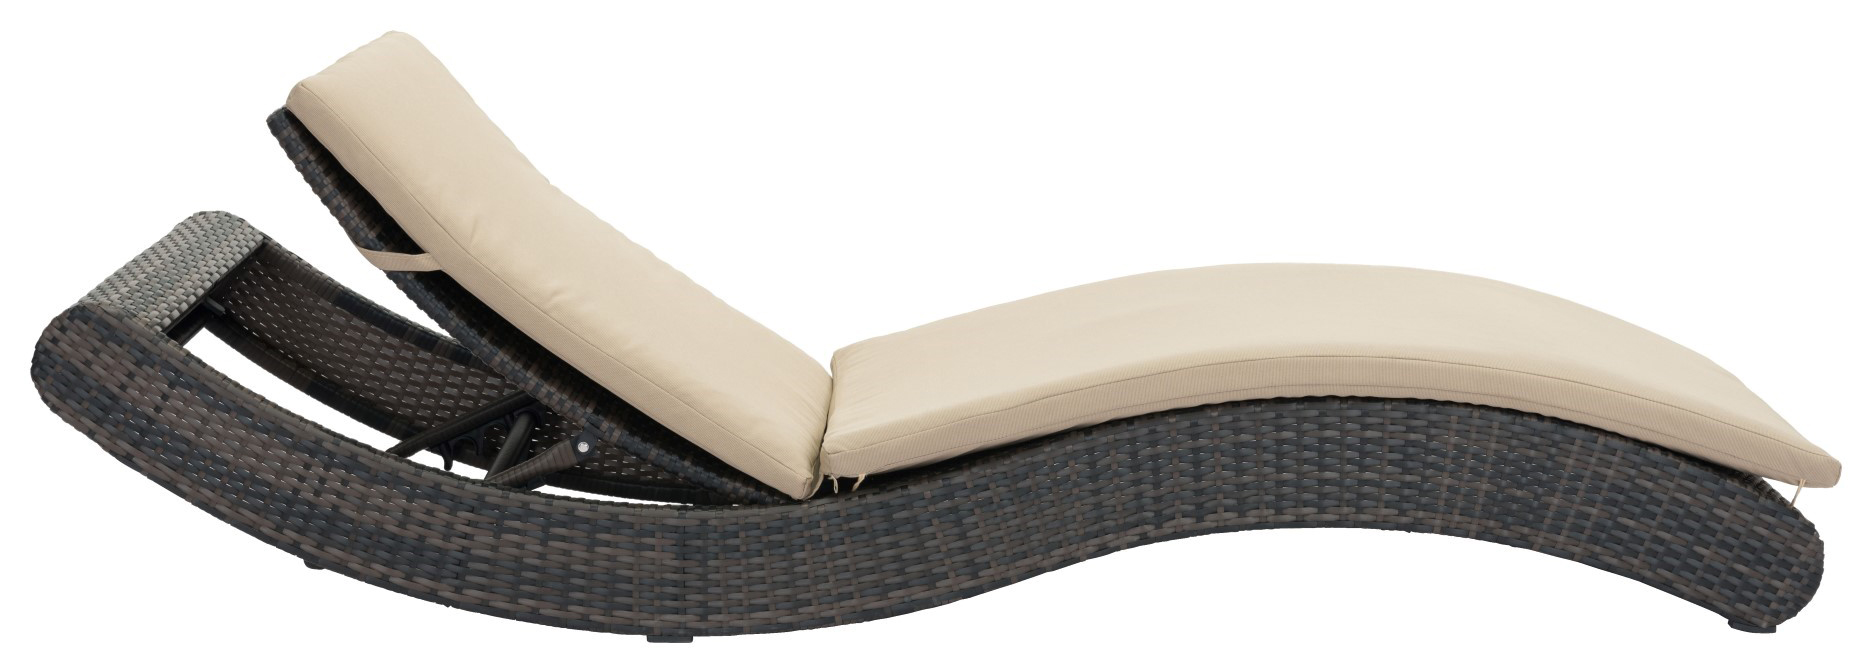 Zuo Pamelon Beach Chaise Lounge Brown and Beige